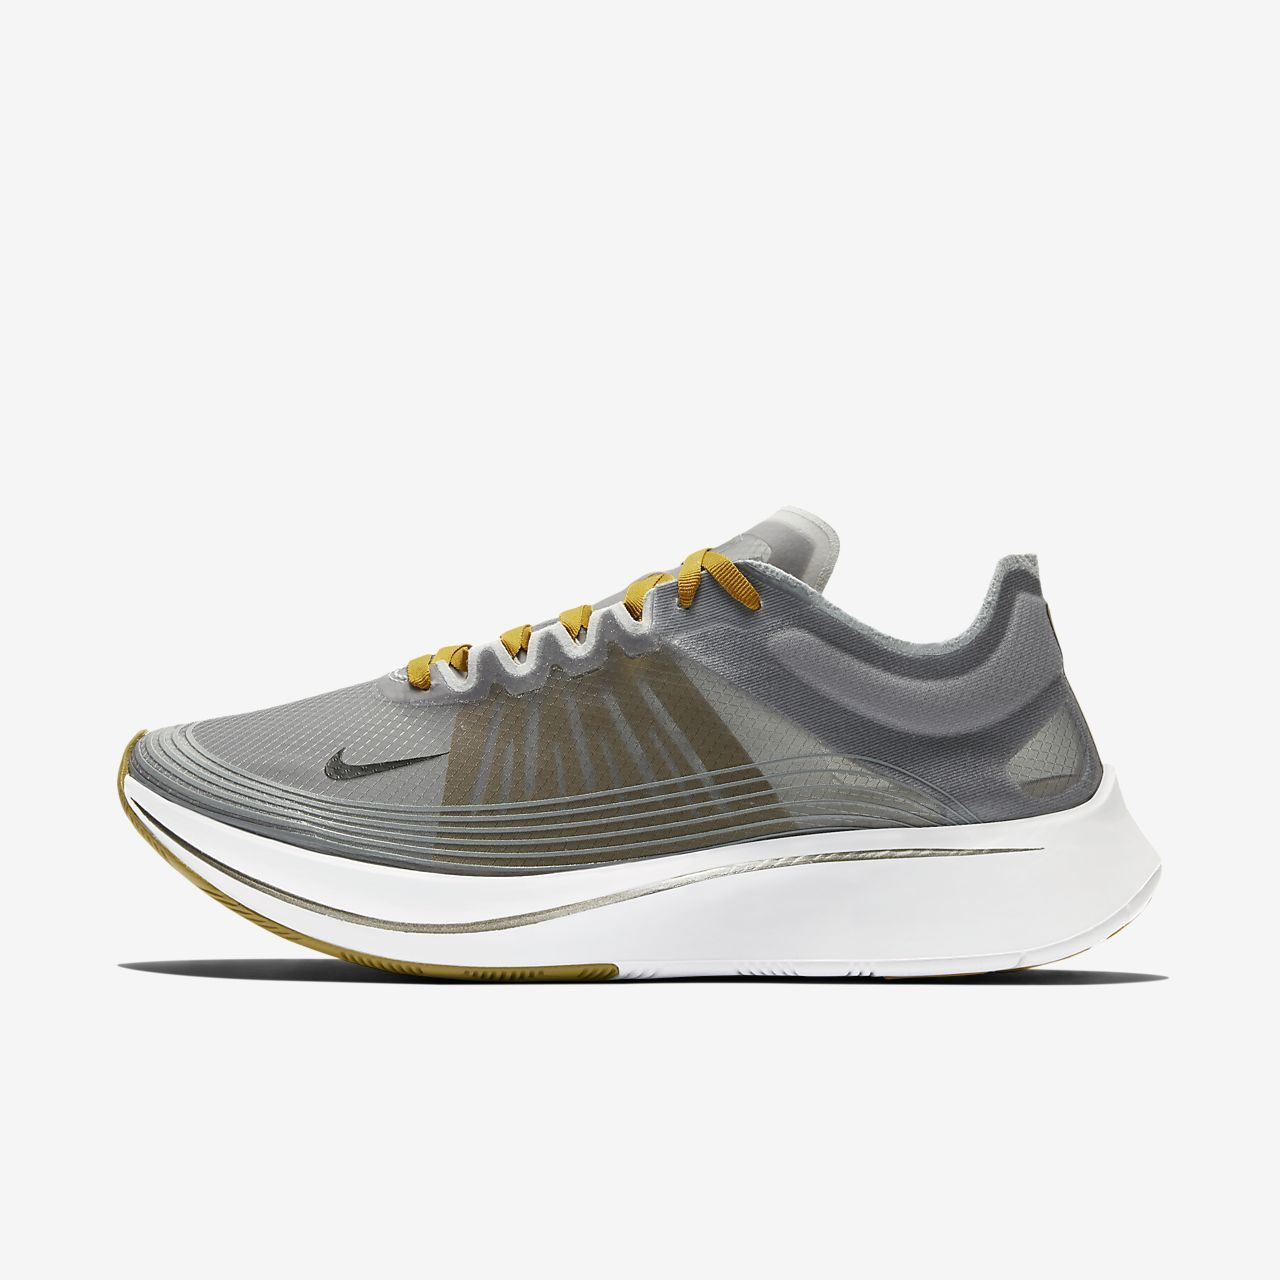 Nike Zoom Fly SP 跑鞋